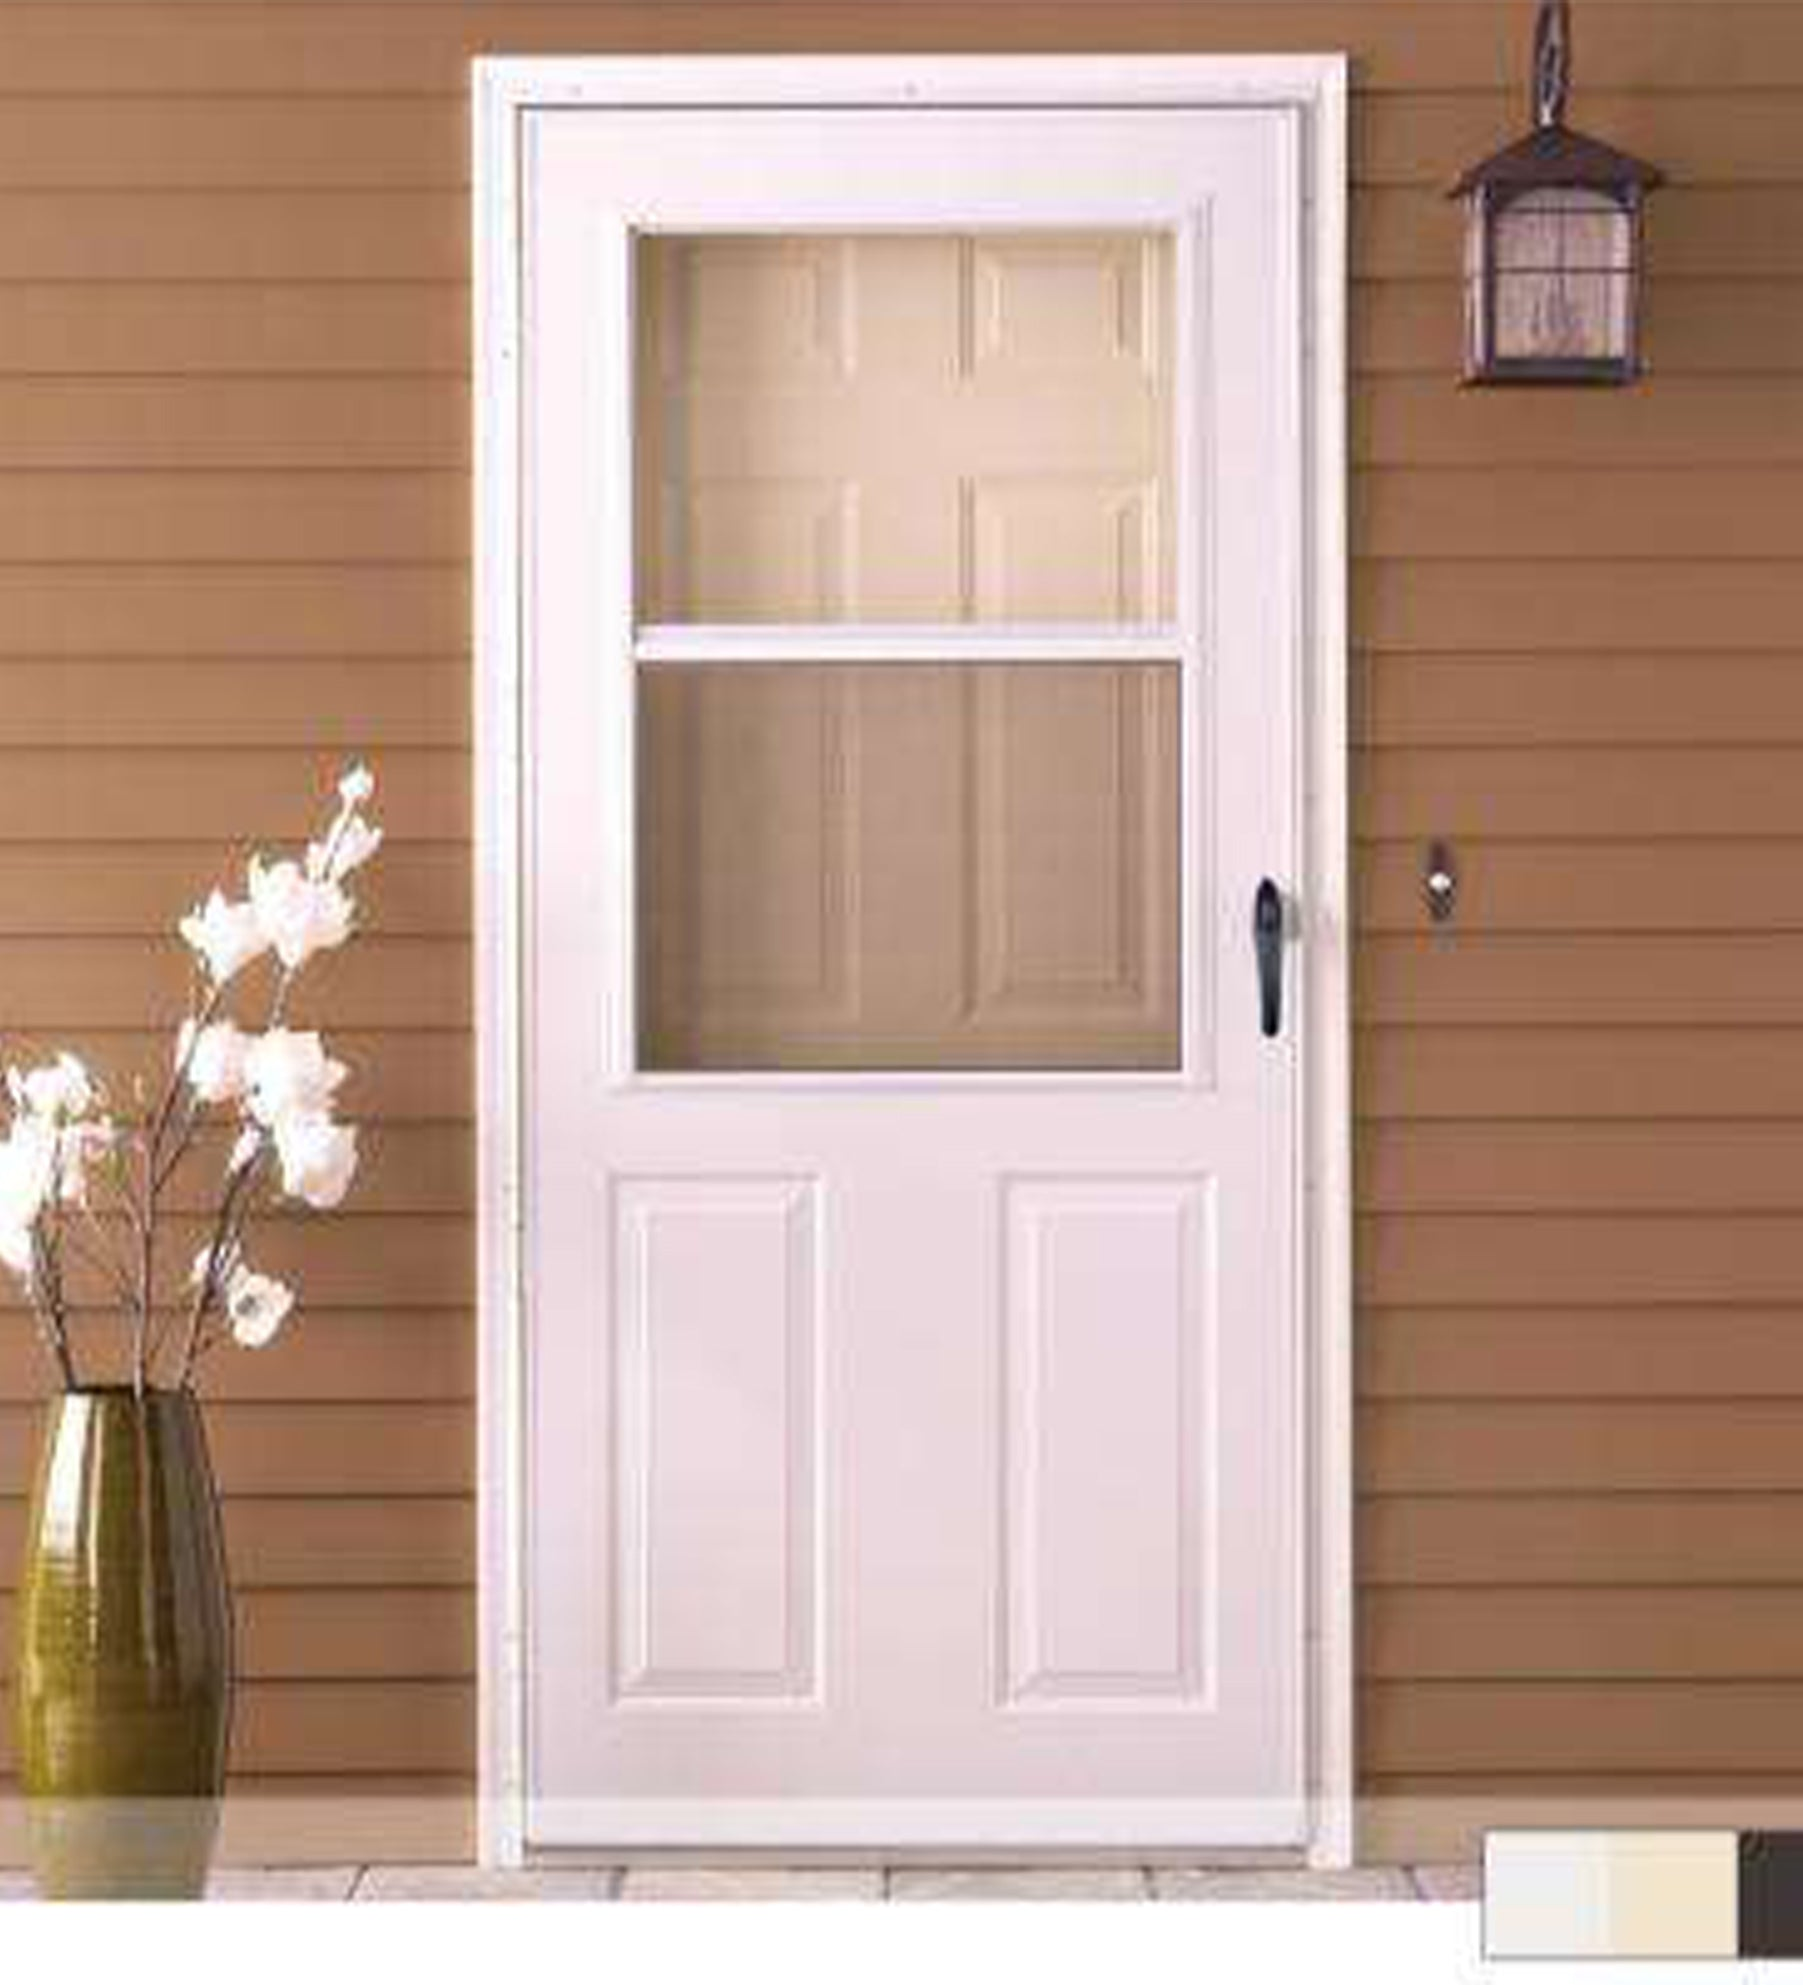 INSTALLED Larson Highview Storm Door w/ Hardware STARTING $652